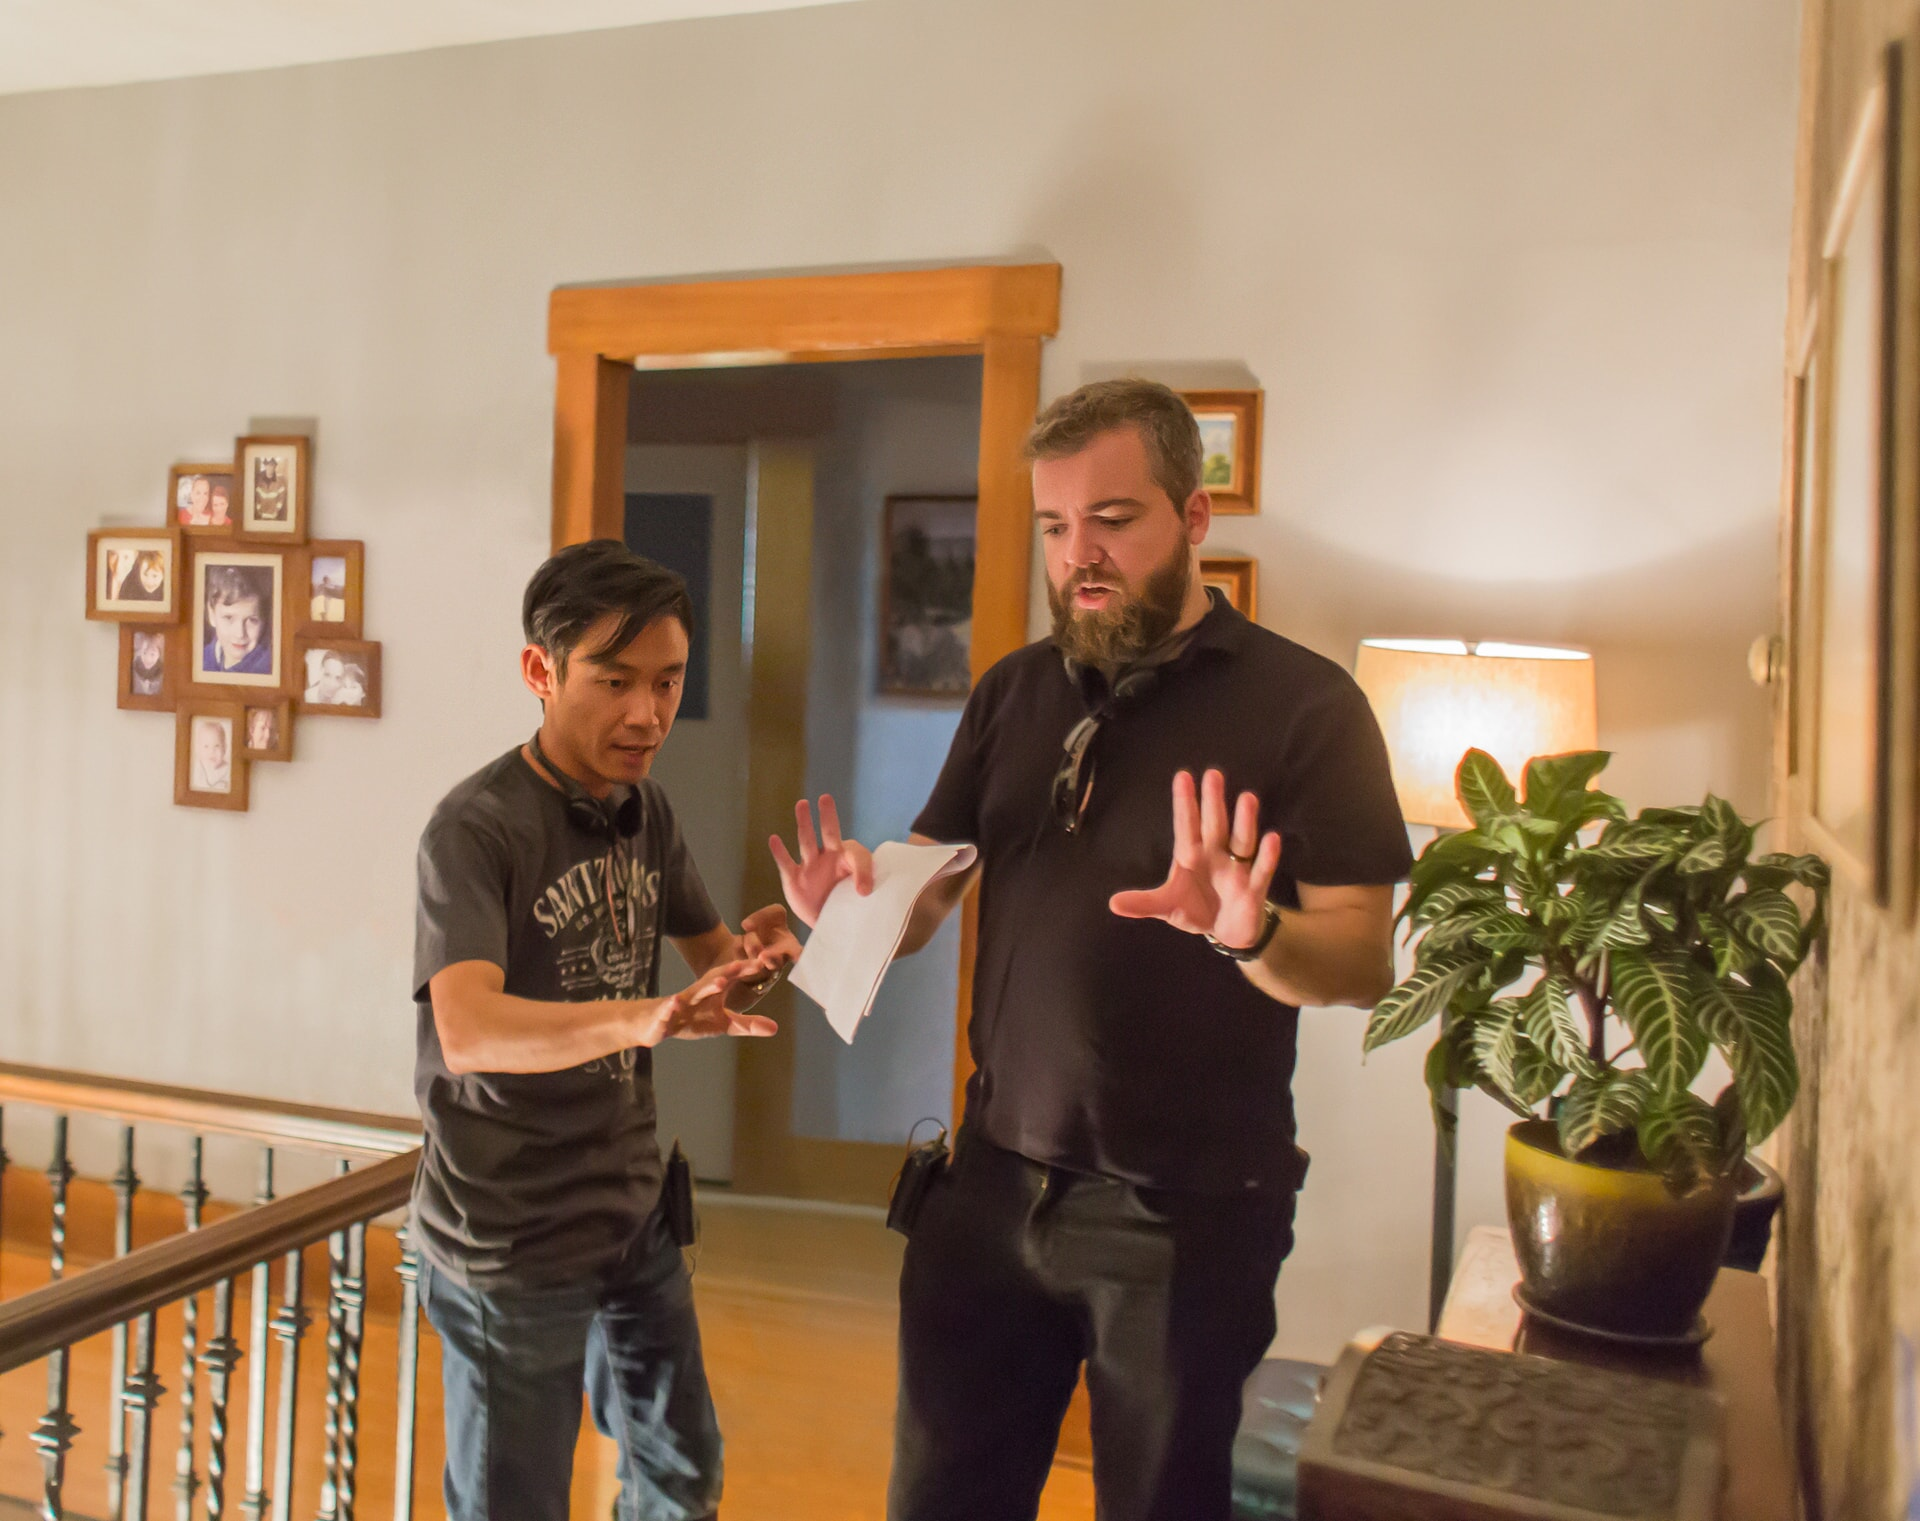 Producer JAMES WAN and director DAVID F. SANDBERG on the set